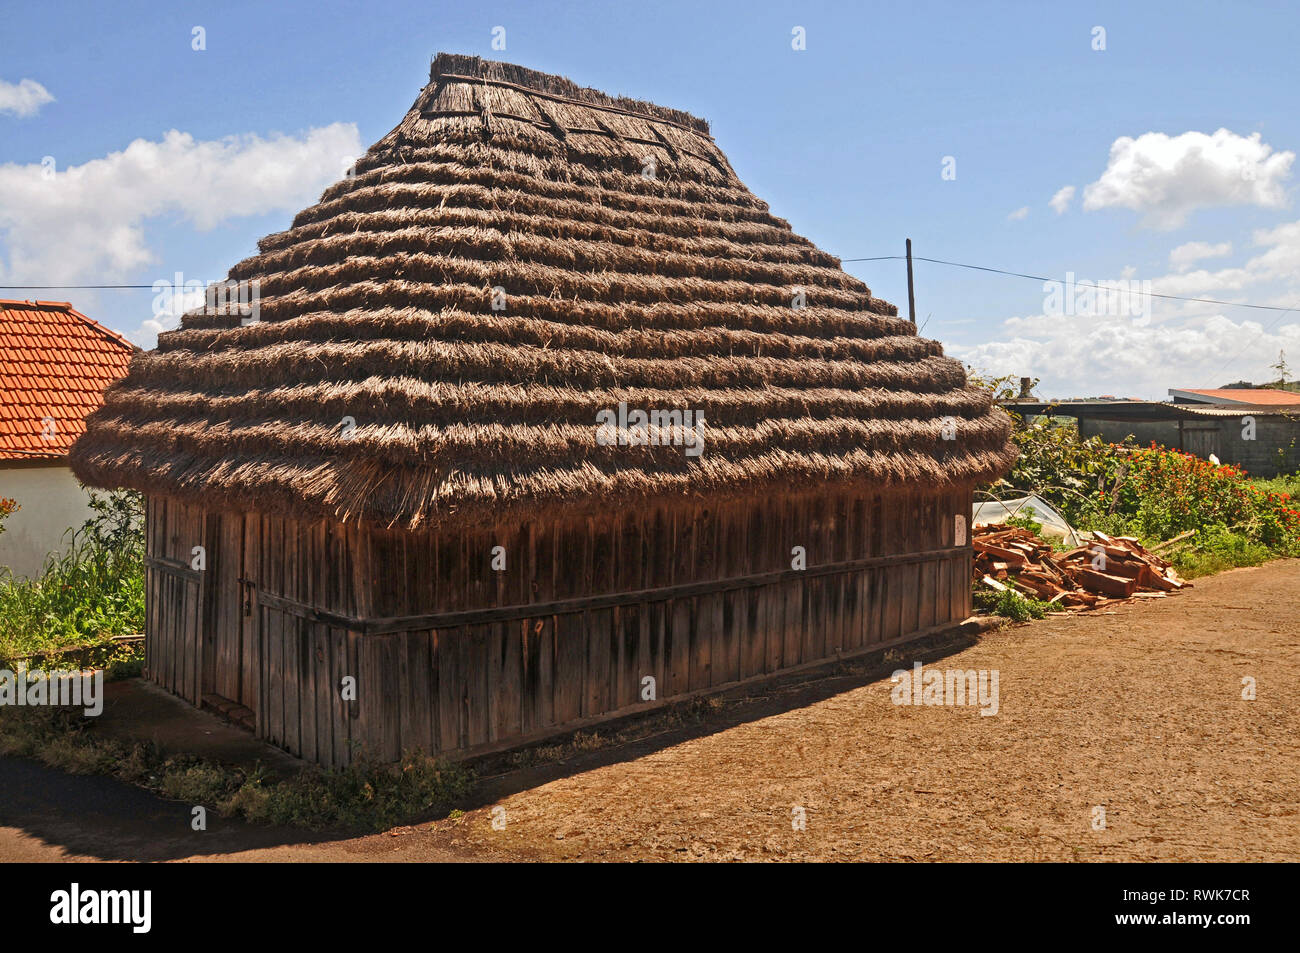 A typical agricultural building on Madeira - Stock Image